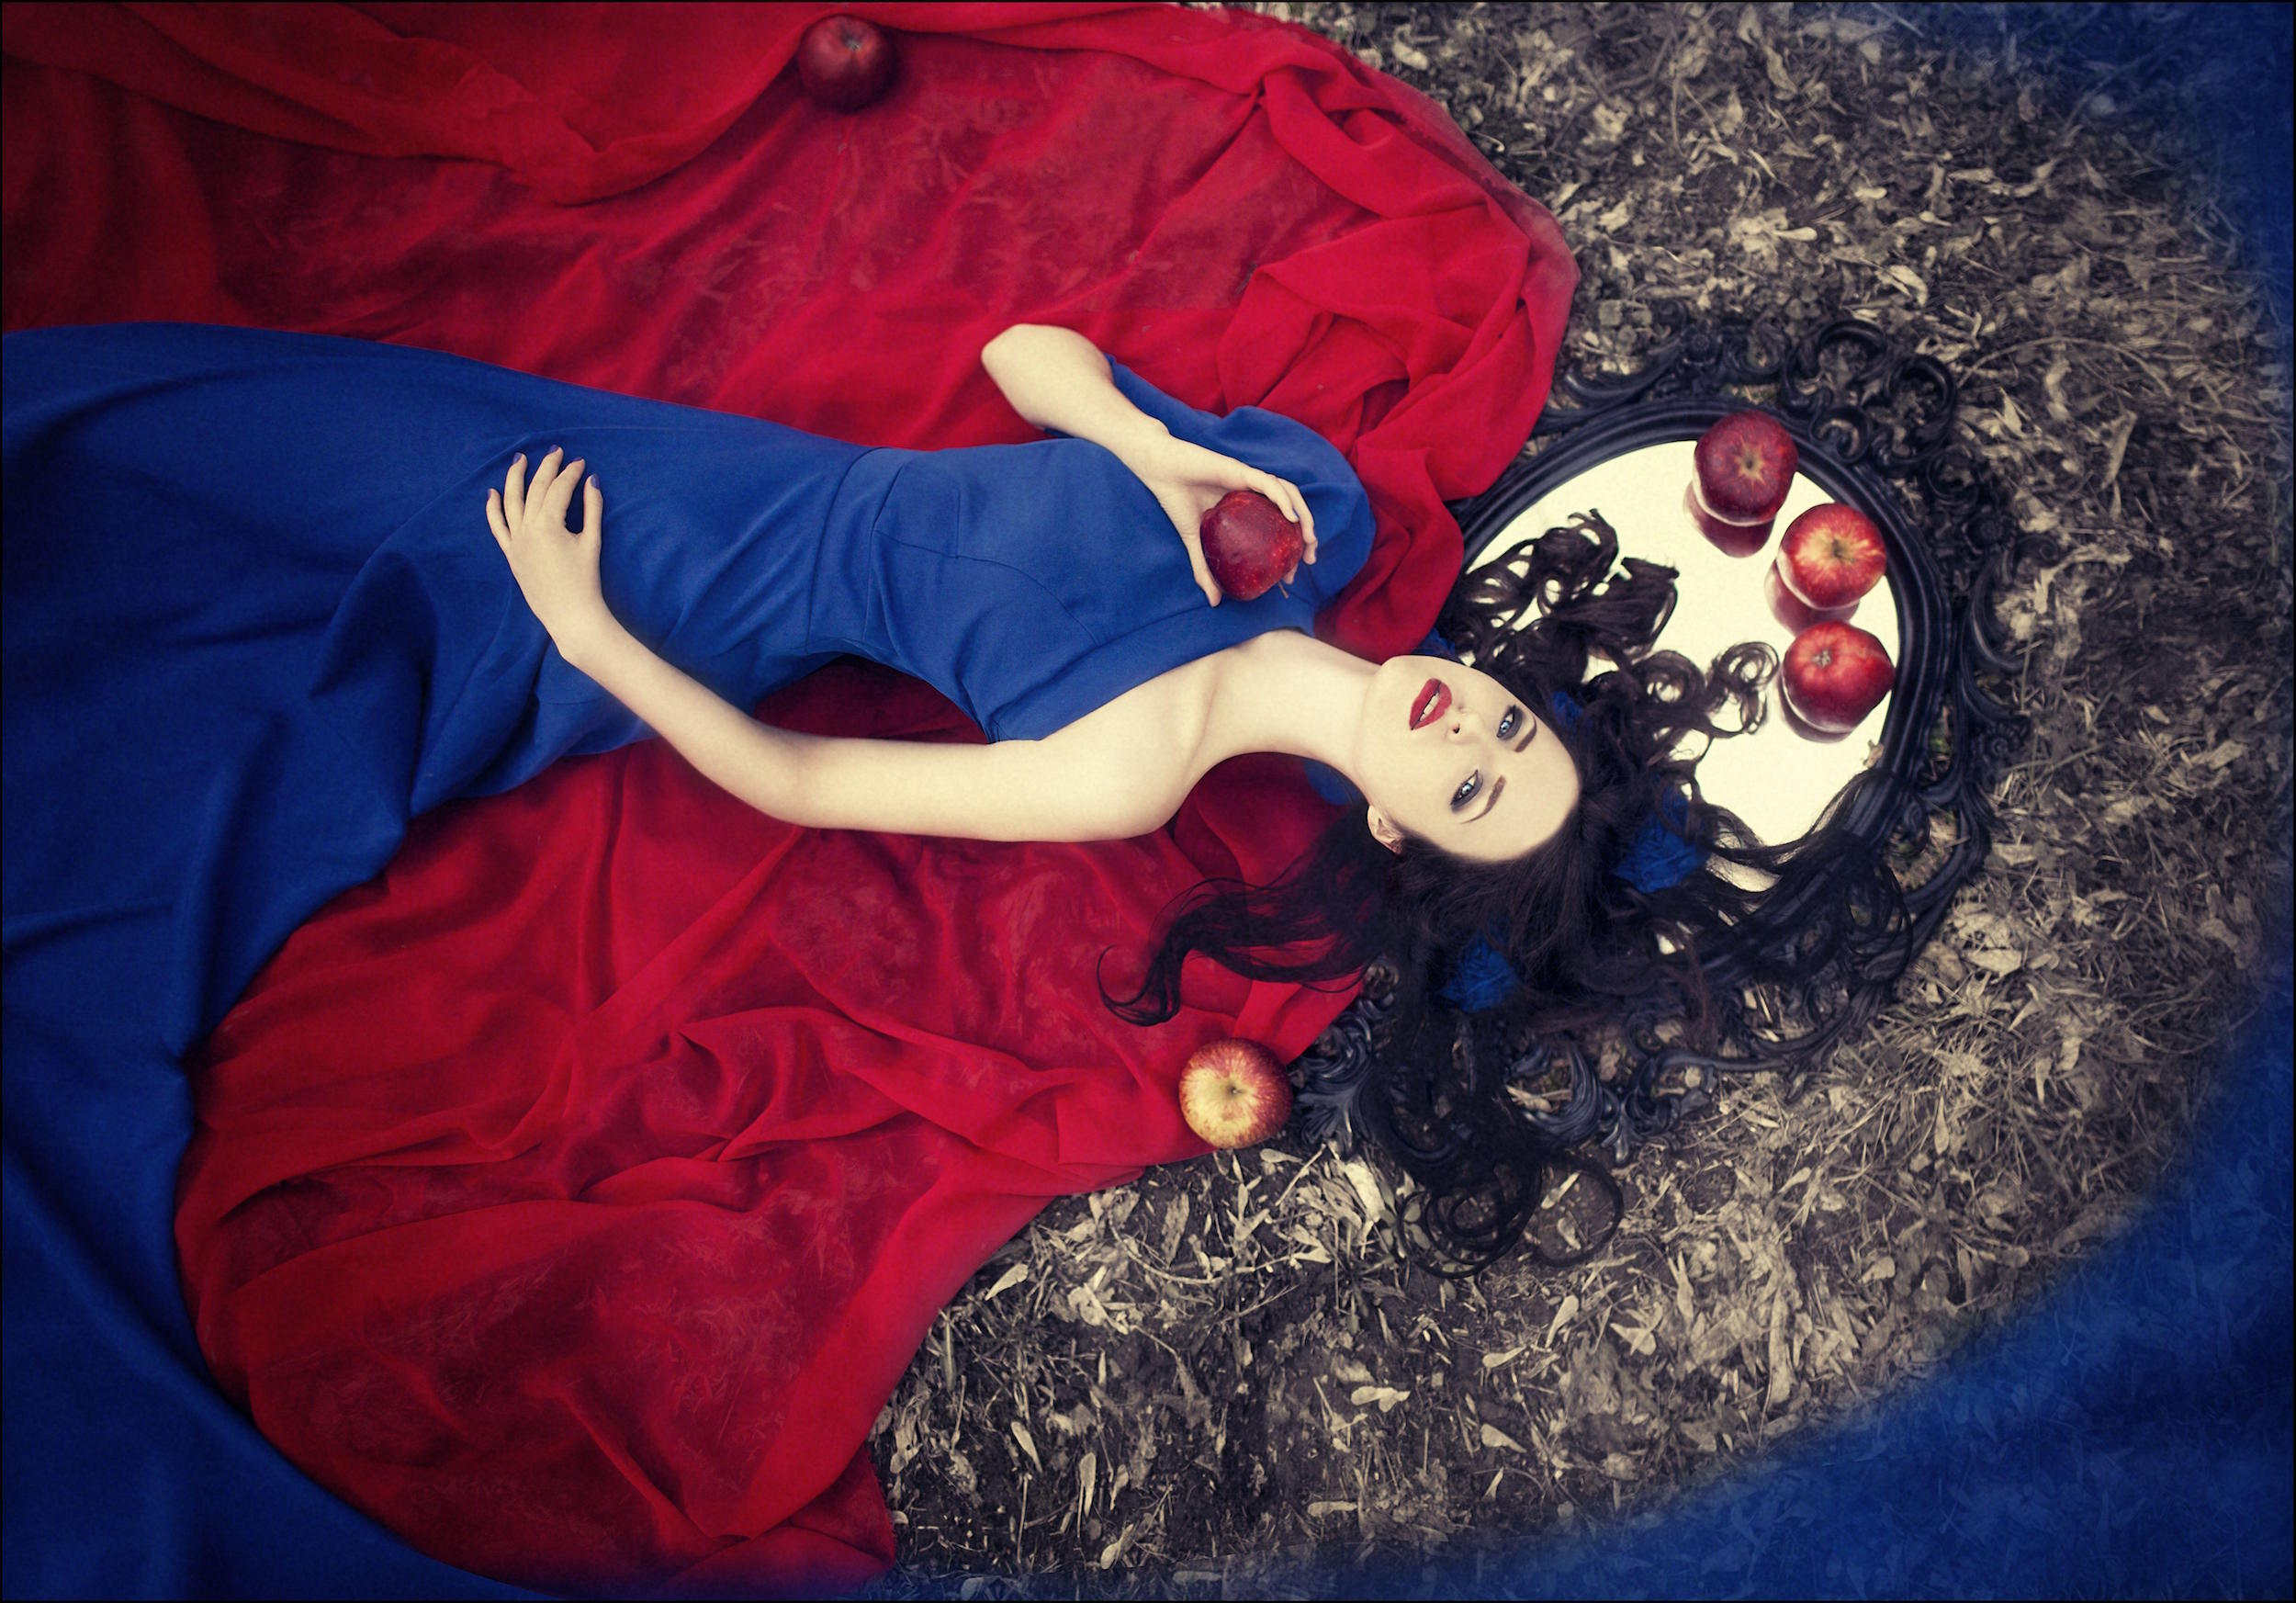 Interview: Margarita Kareva Explains How She Brings Fairy Tales to Life